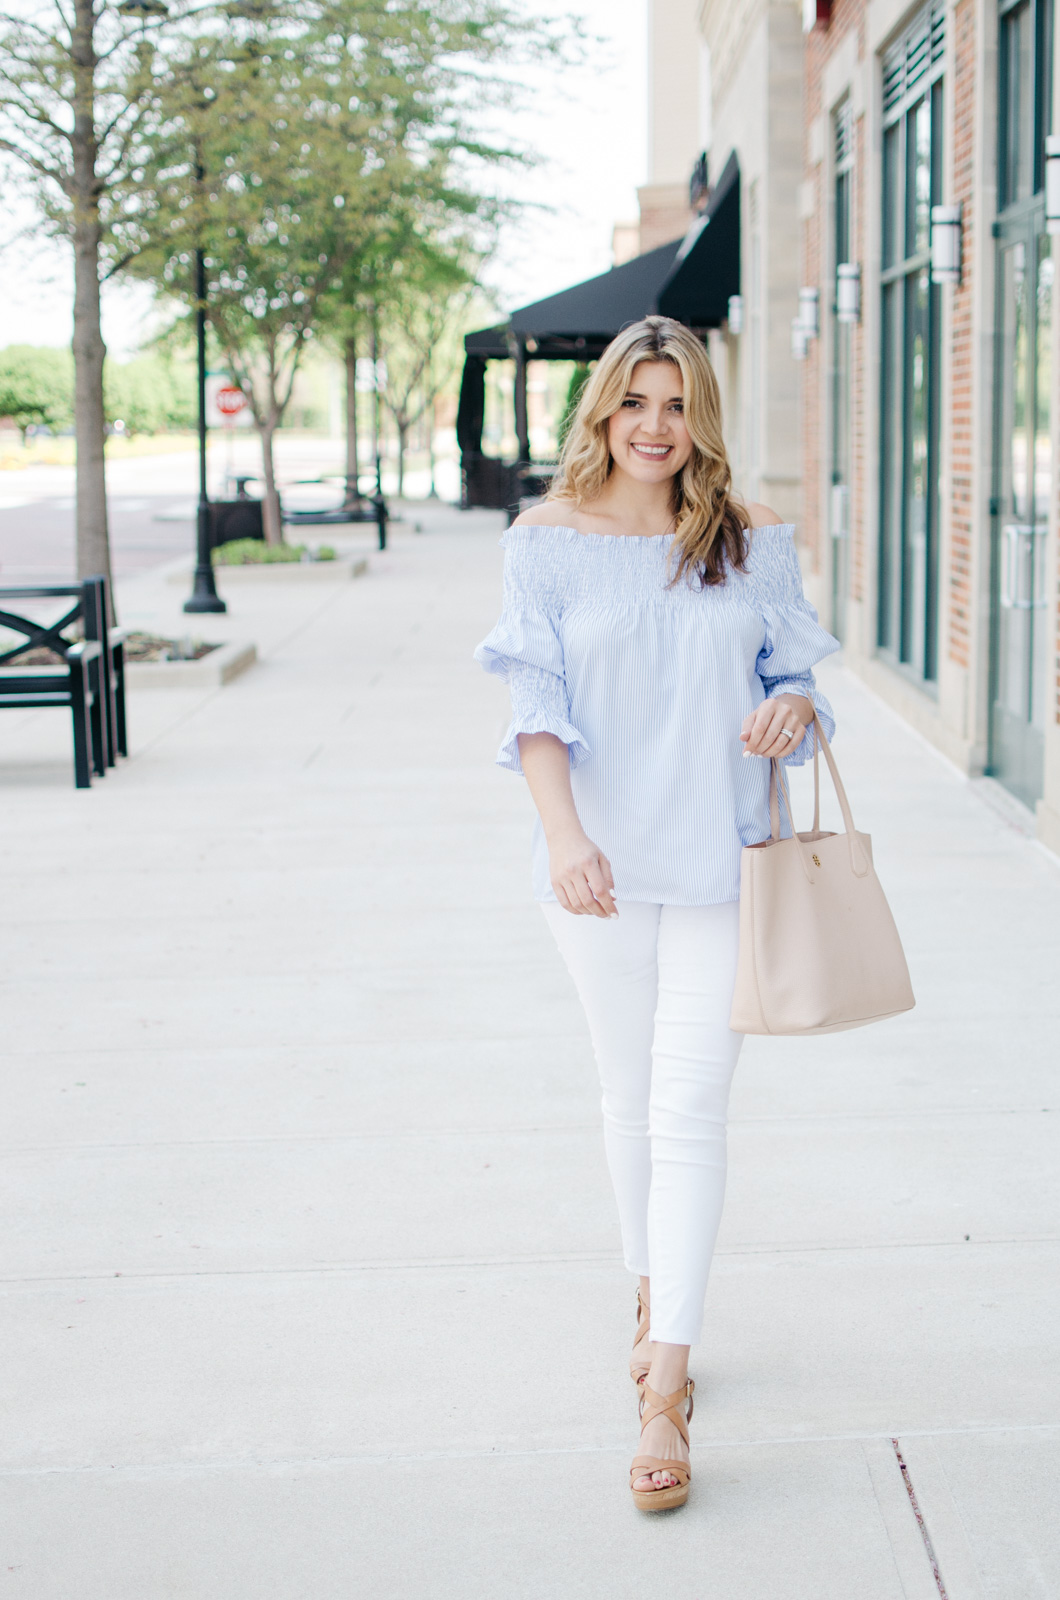 white jeans spring outfit - my go-to spring outfit | Want more Spring outfit inspiration? Head to bylaurenm.com!